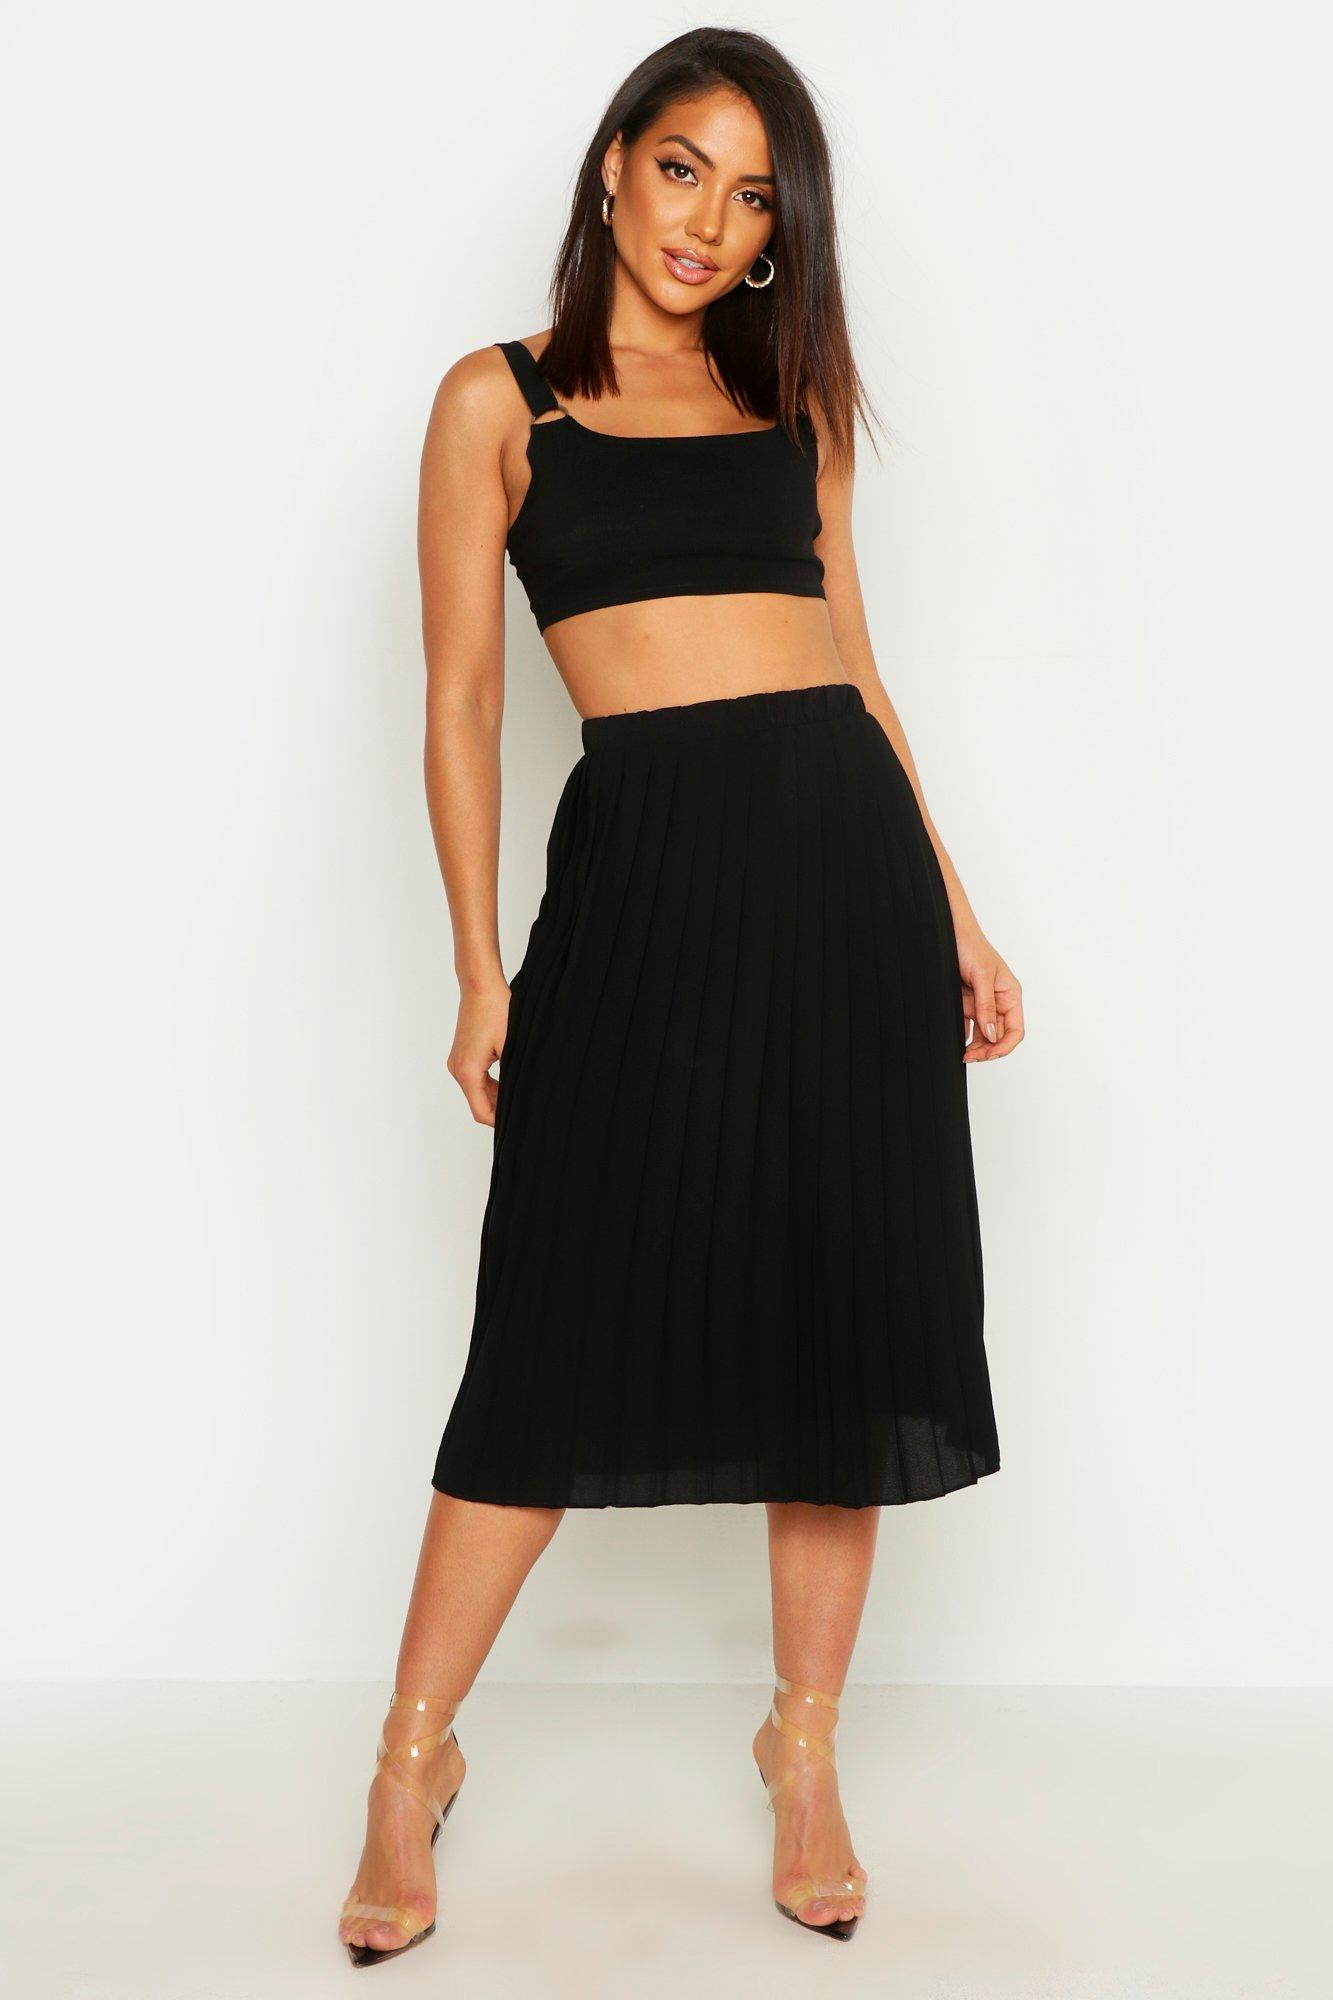 1920s Style Skirts Neave Crepe Pleated Midi Skirt black $35.00 AT vintagedancer.com